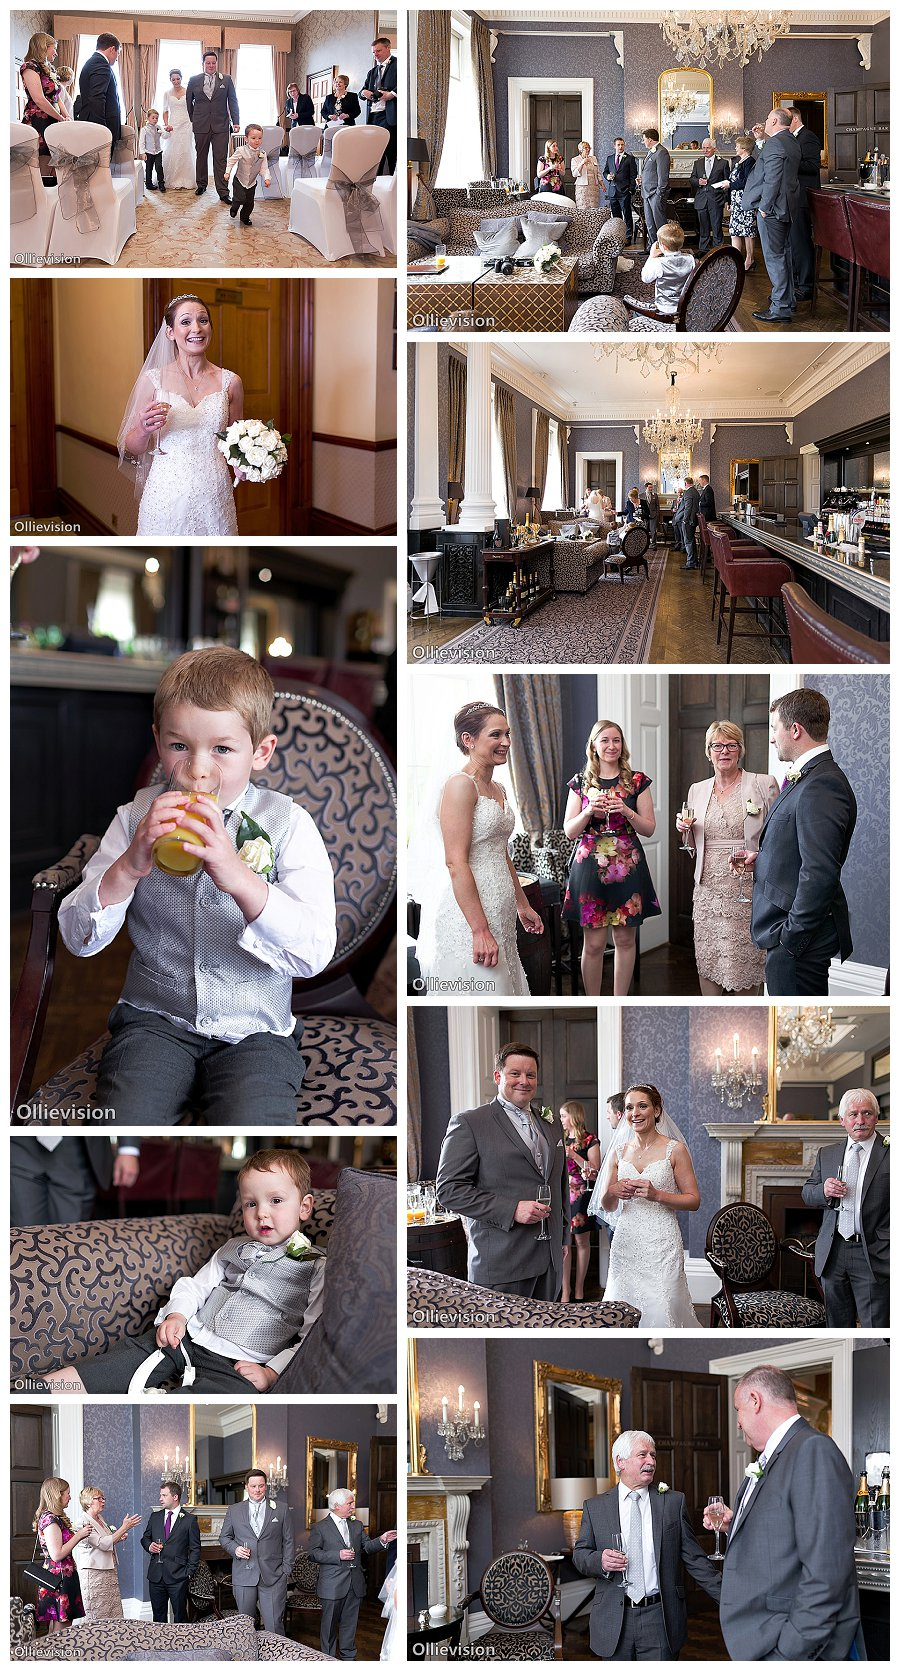 wedding photography Oulton Hall Hotel, oulton hall wedding photographers